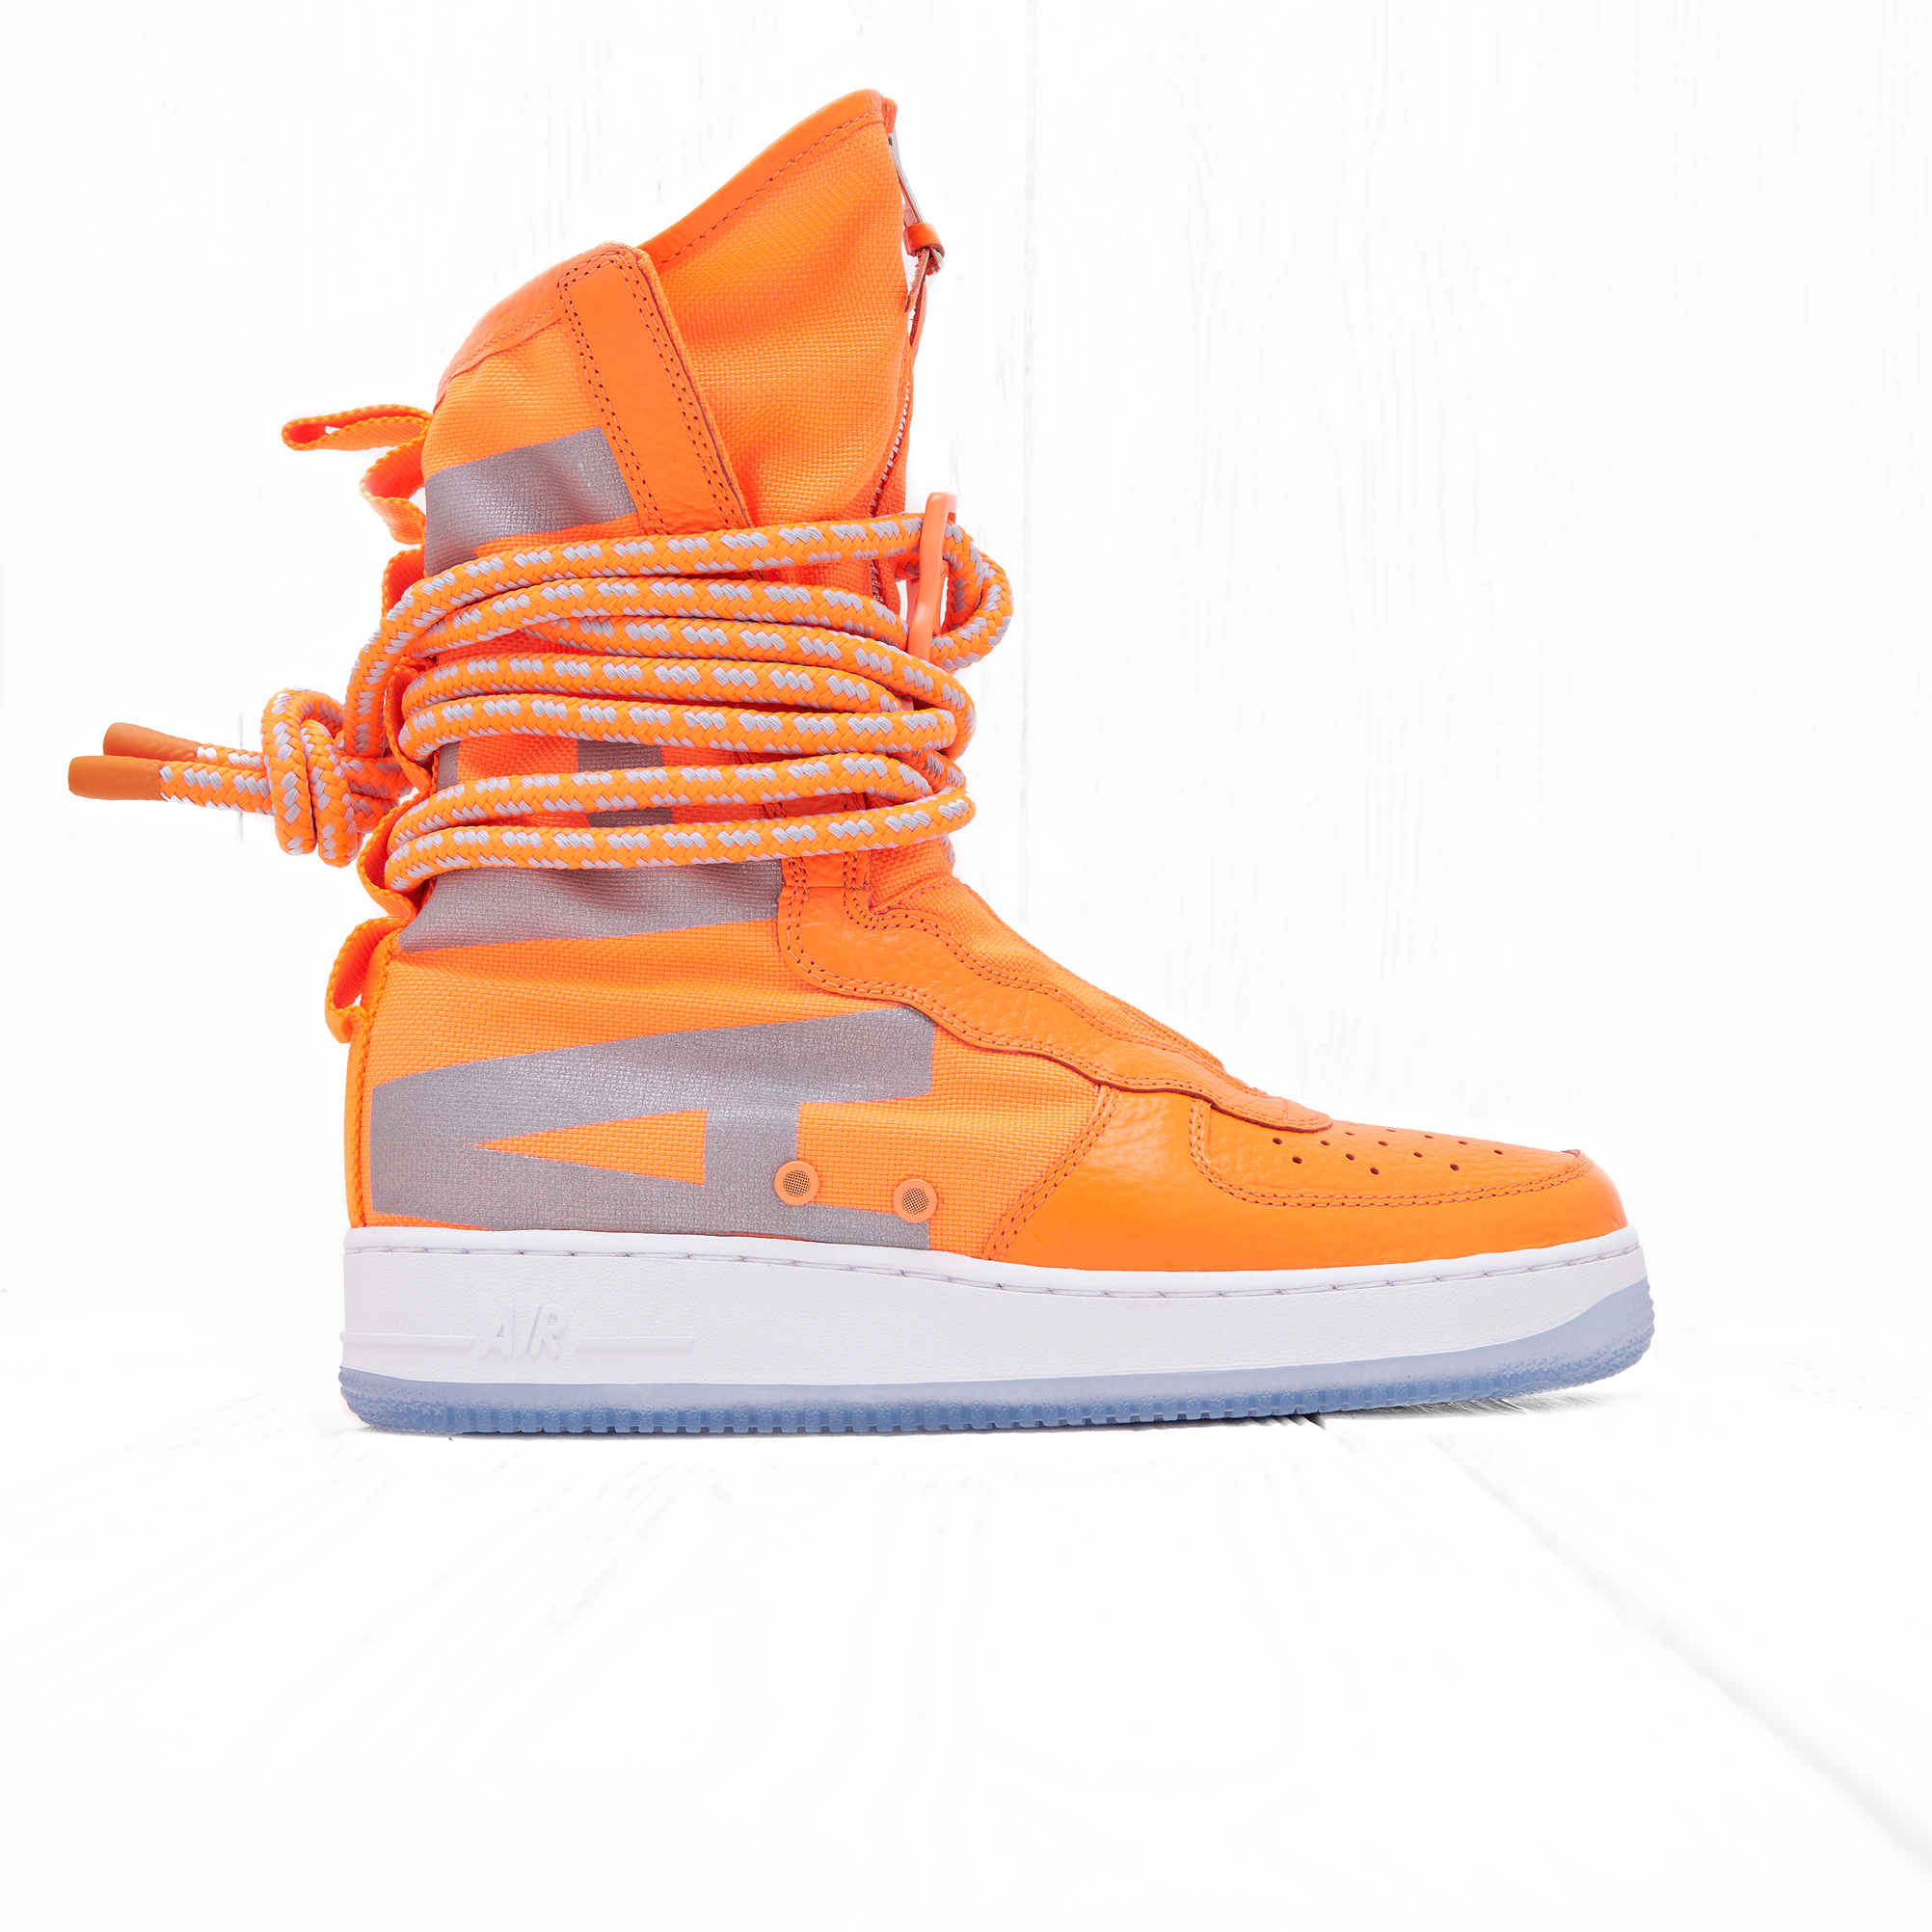 Кроссовки Nike SF AF1 HI Total Orange/Total Orange